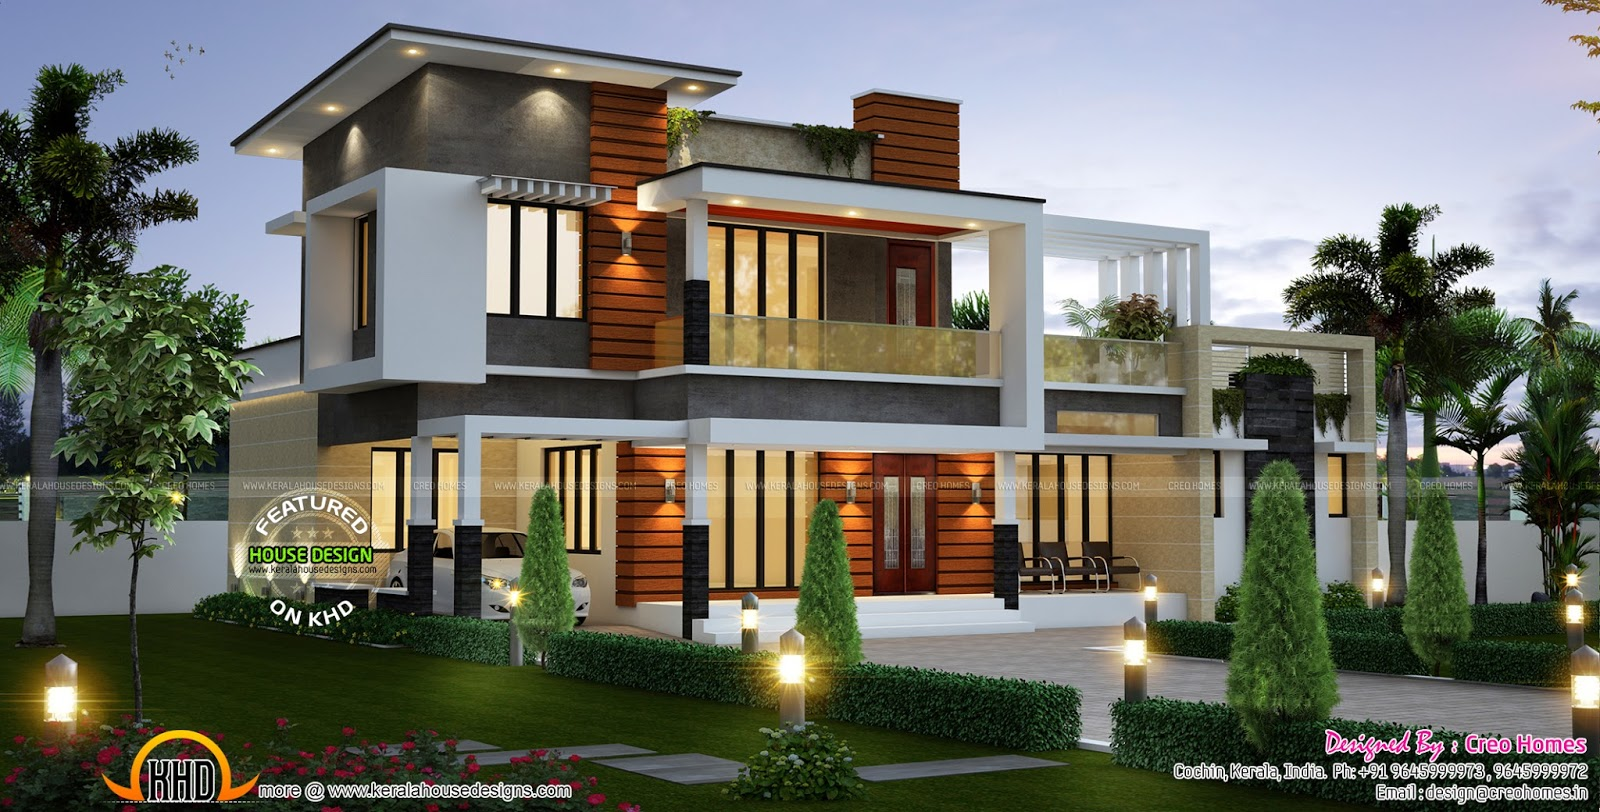 2075 sq ft modern contemporary house kerala home design for 3000 sq ft house plans kerala